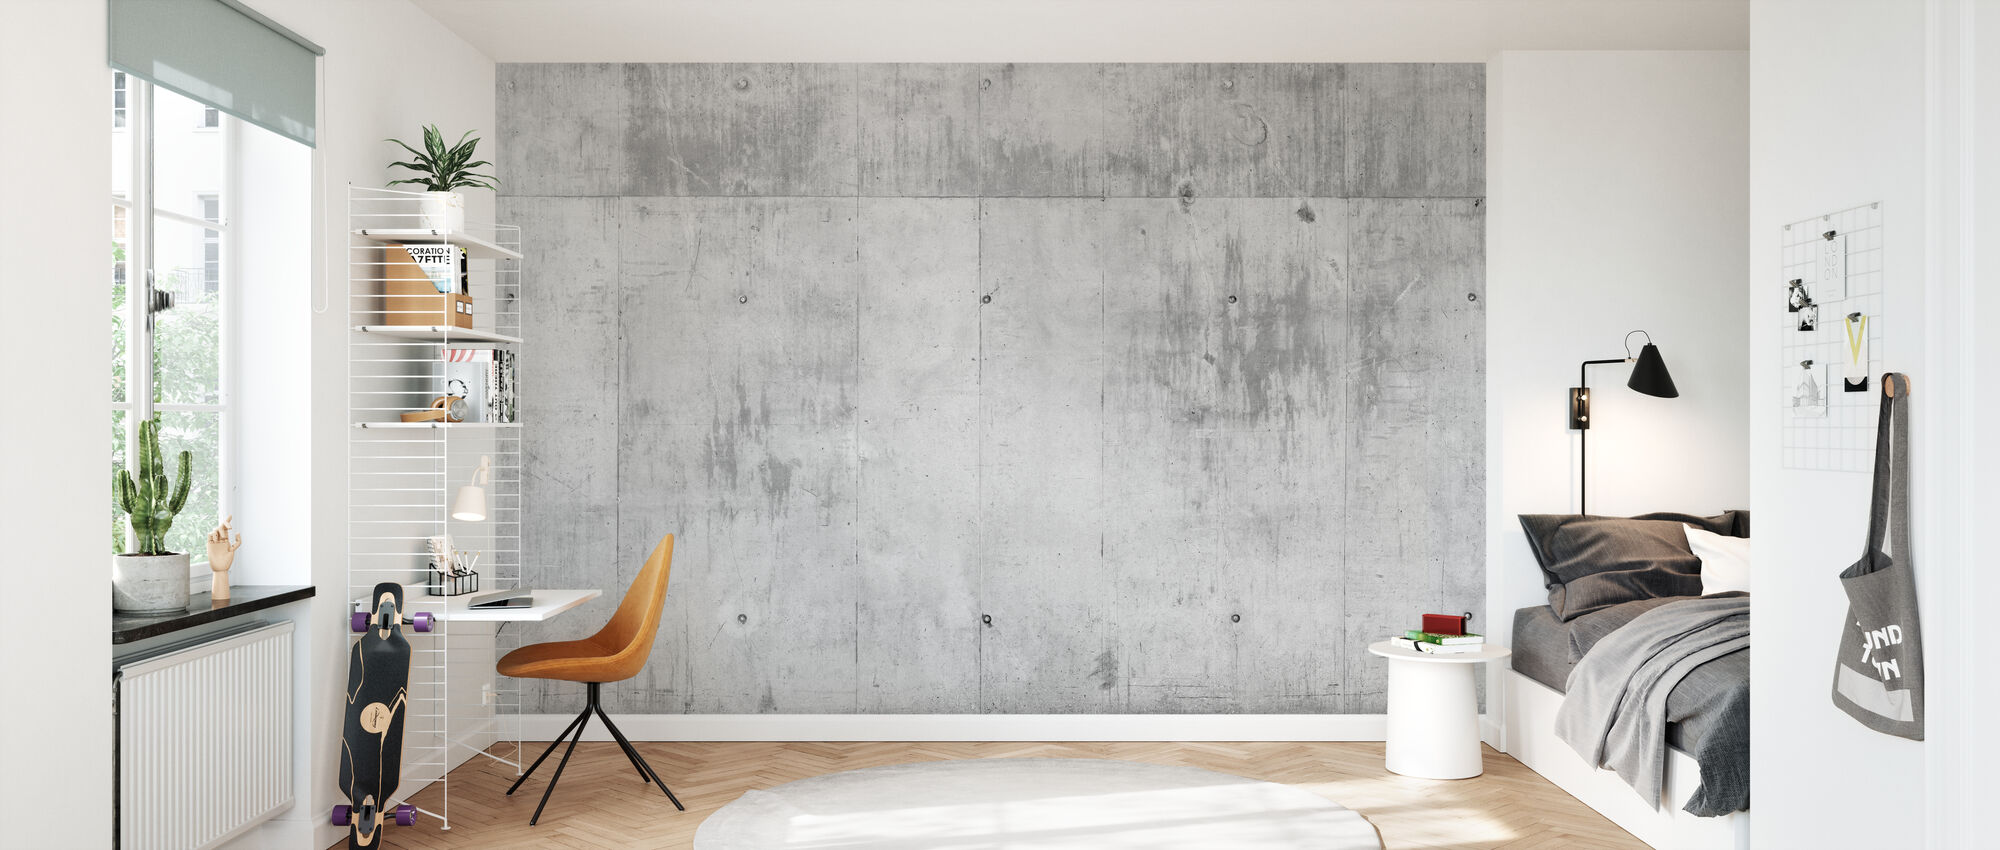 Concrete Wall - Wallpaper - Kids Room